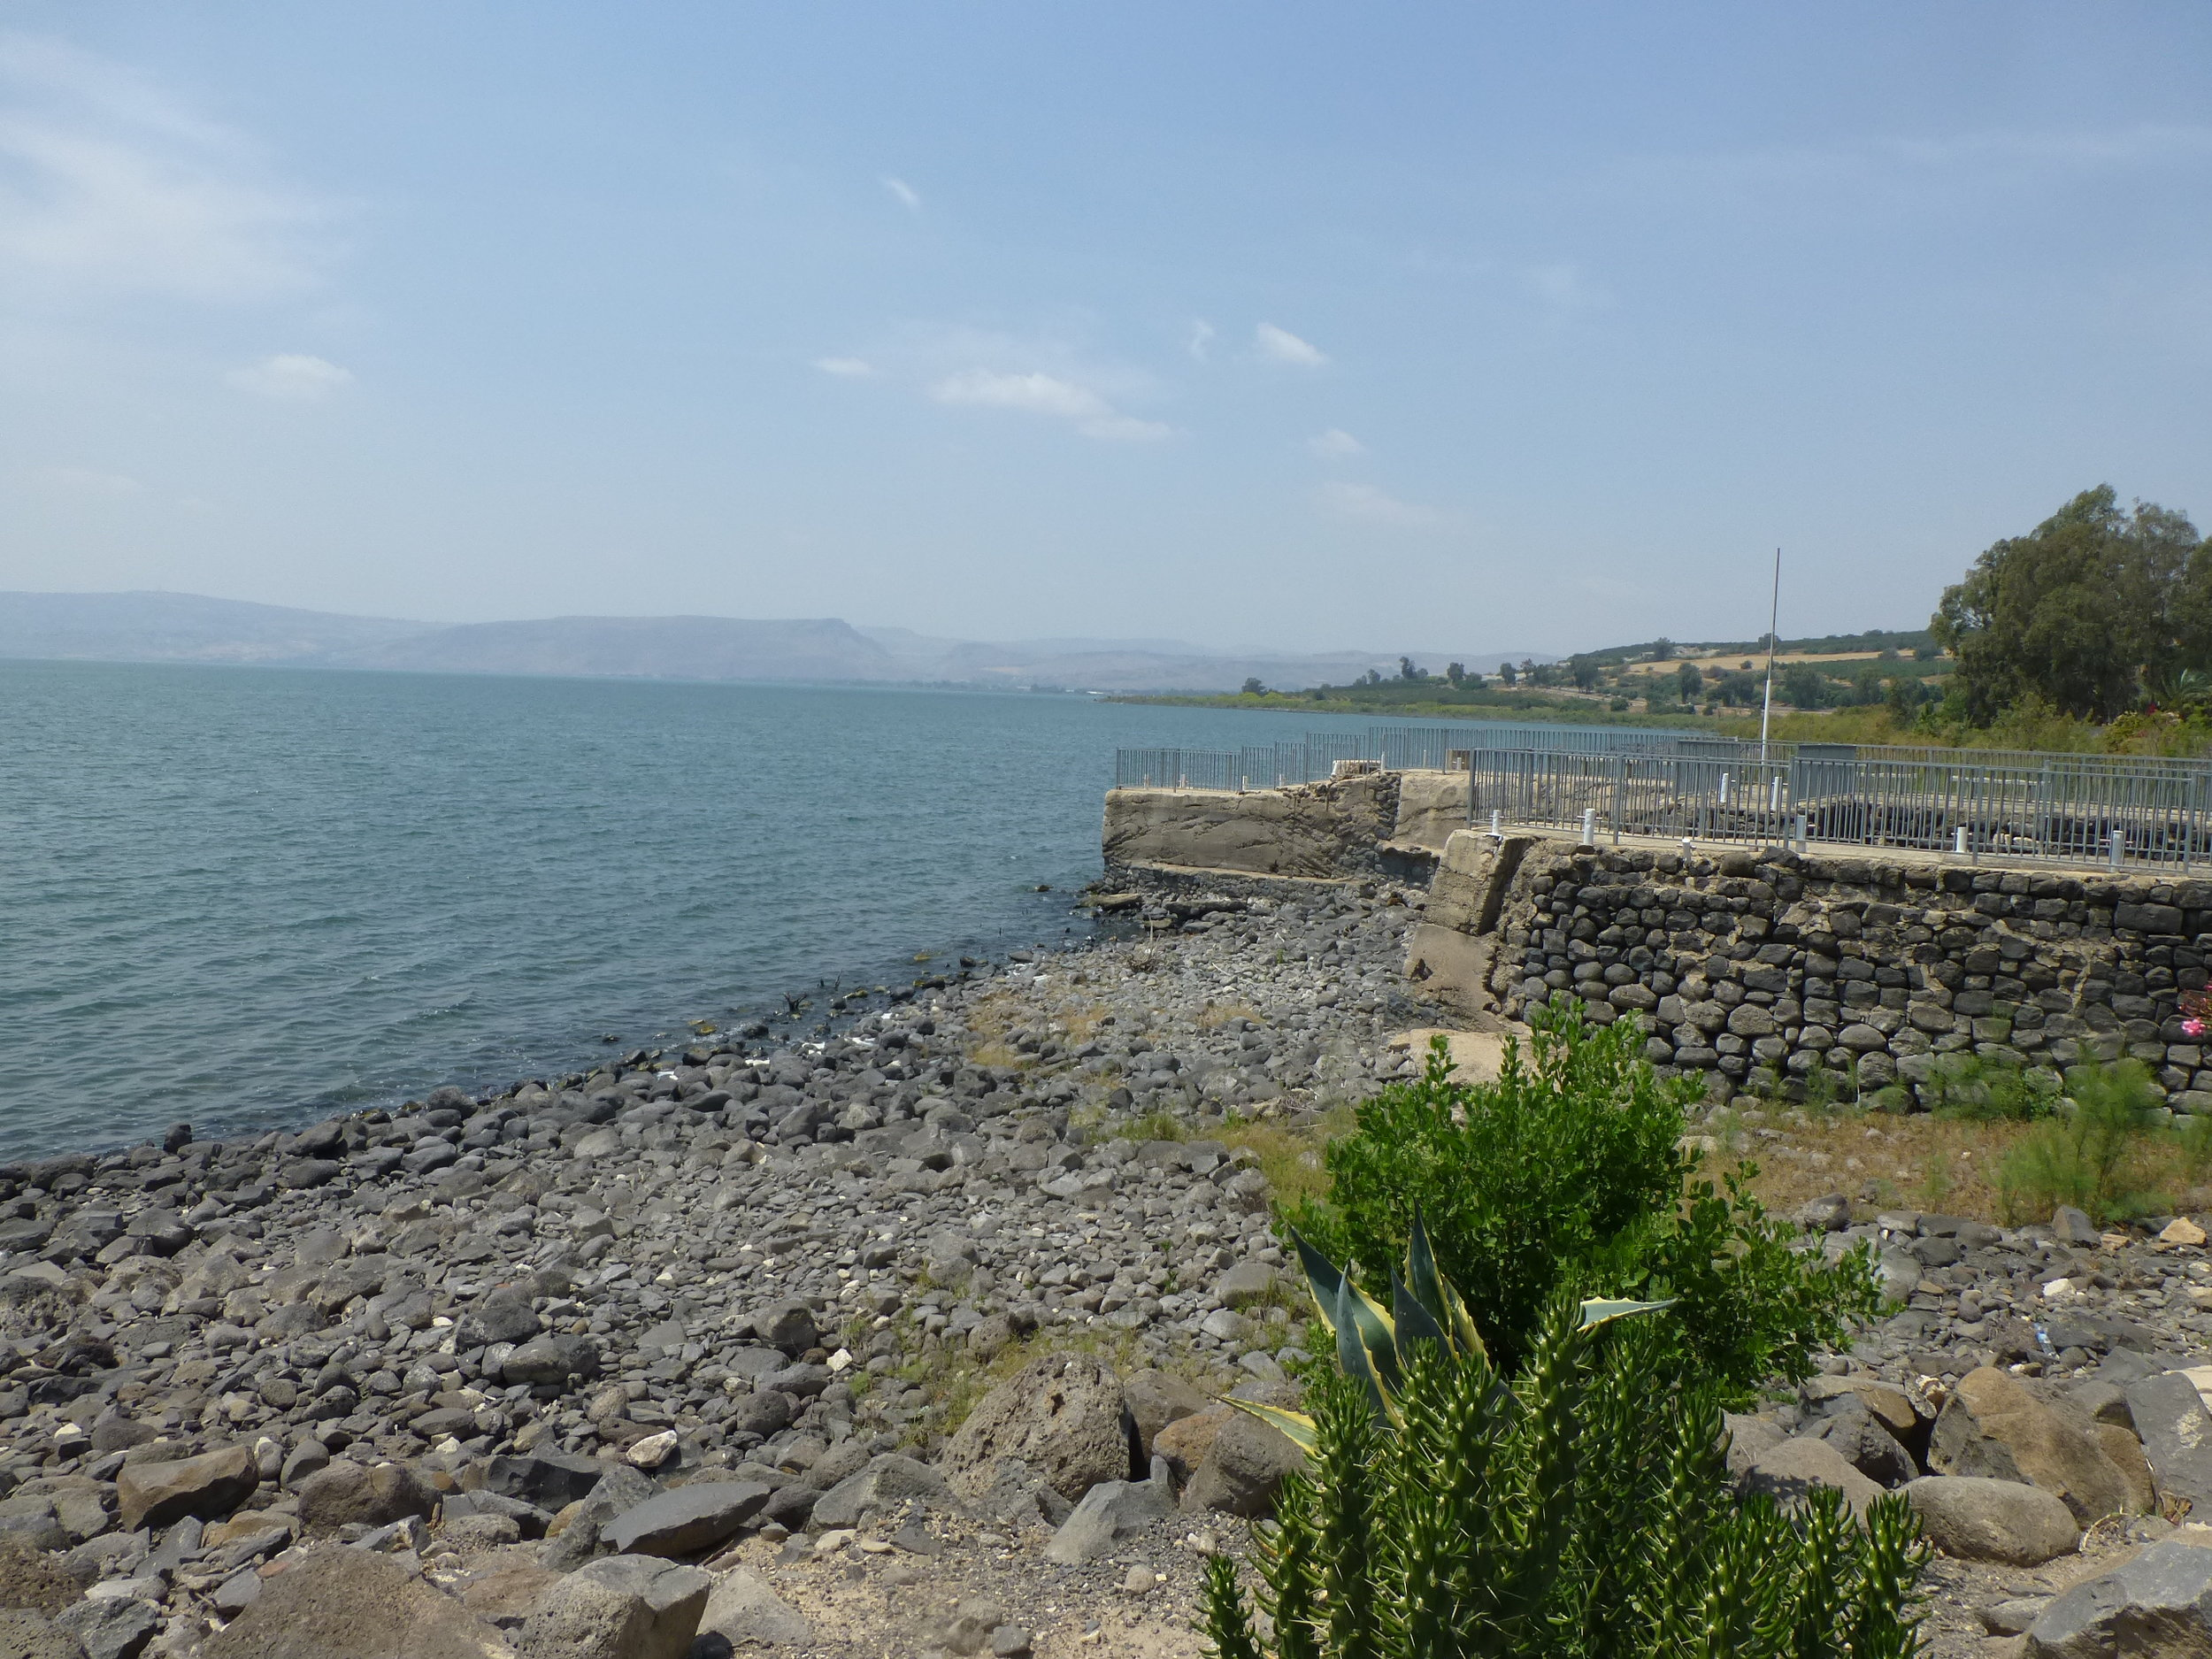 Capernaum-Sea of Galilee Israel 5.JPG